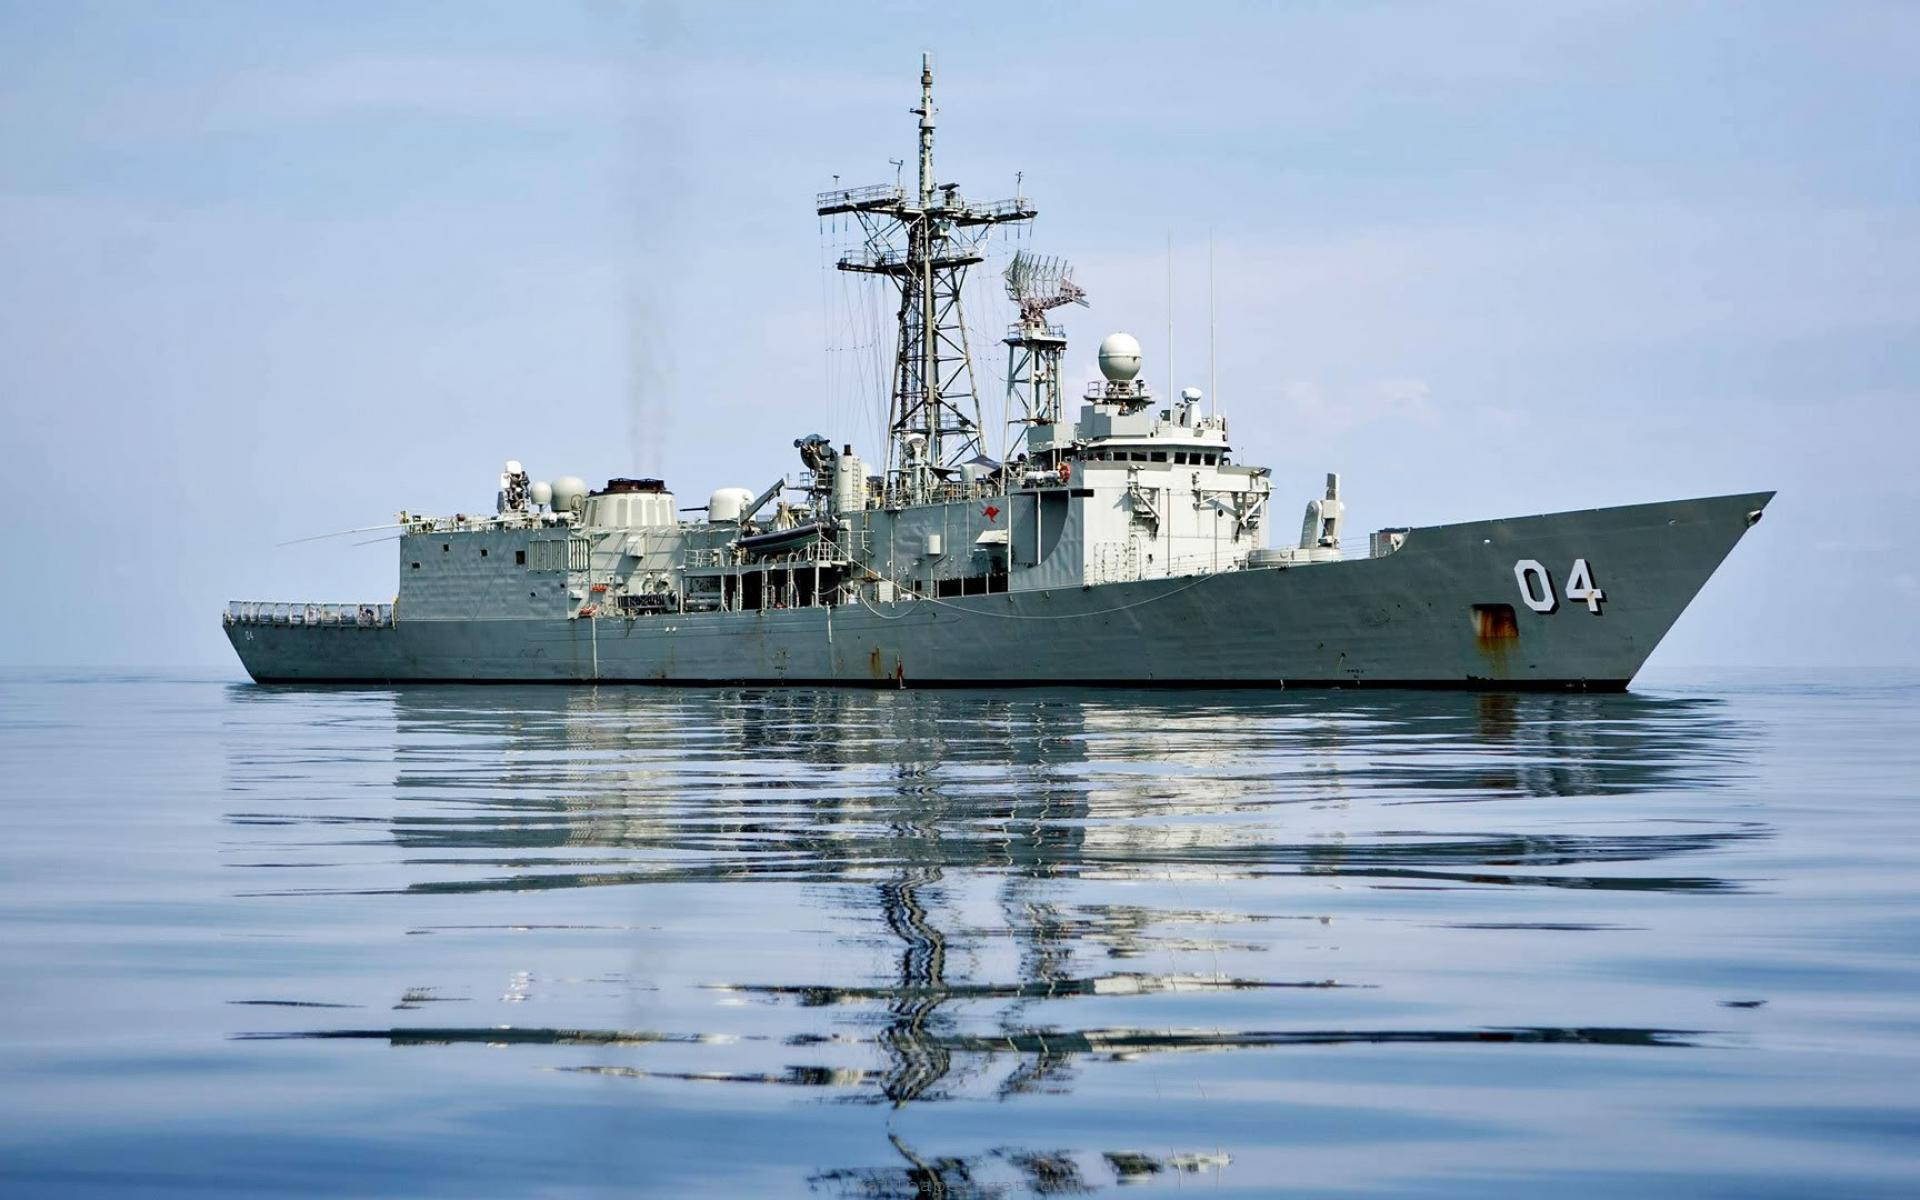 nigerian navy takes delivery of new warship donated by